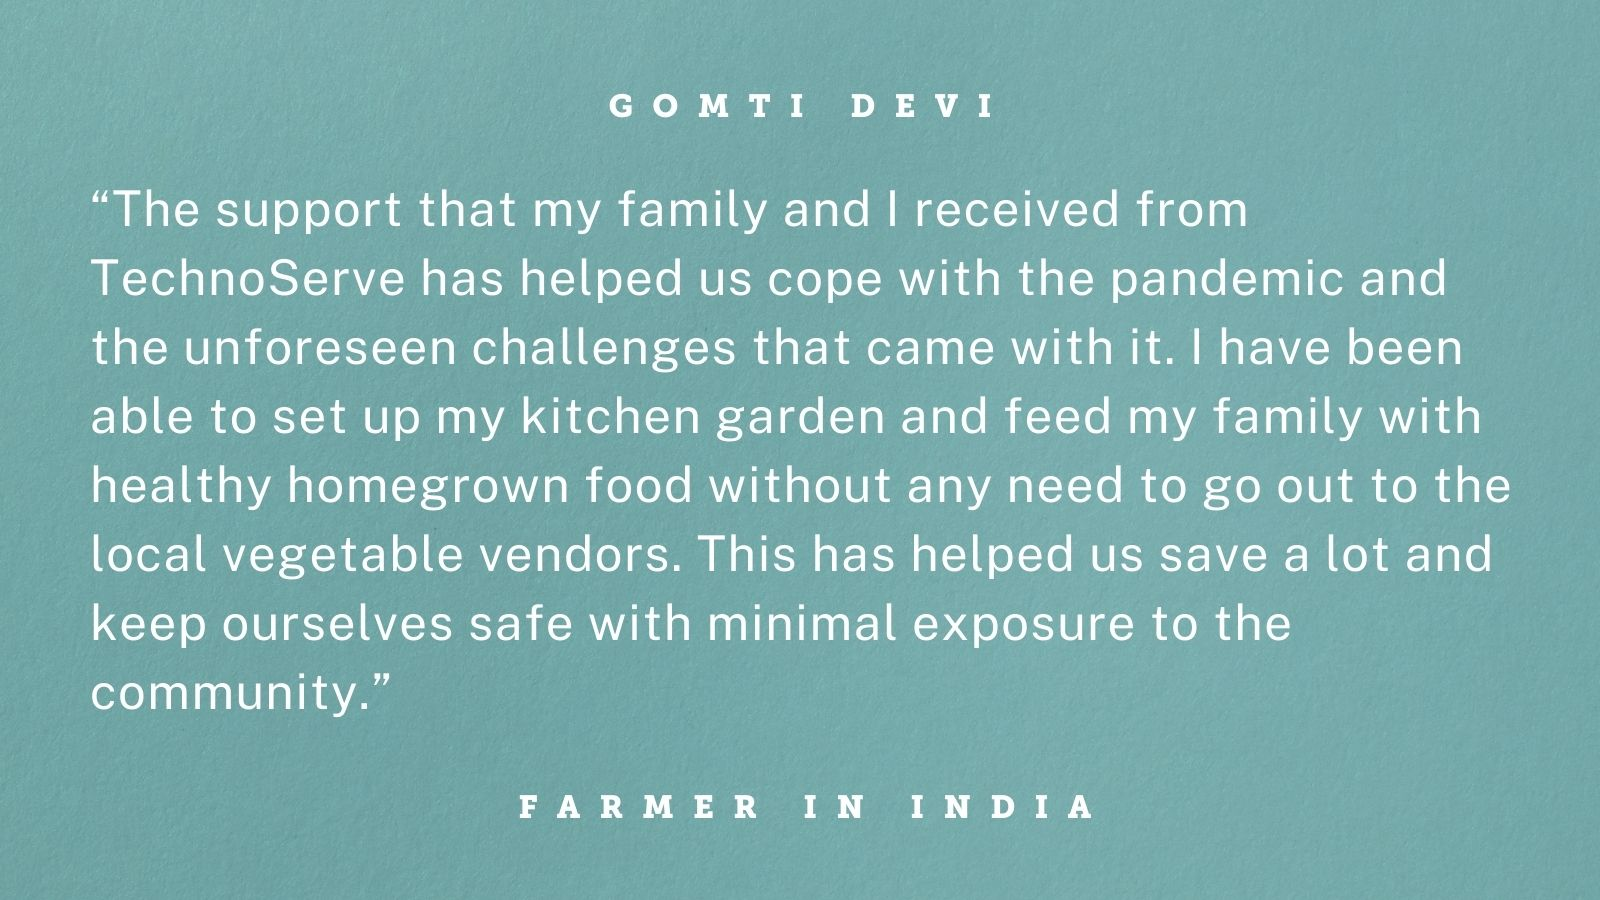 "Quote from Gomti Devi, a smallholder guar farmer in Bikaner, Rajasthan, India, whose gender-inclusive training from TechnoServe helped her withstand the COVID-19 crisis. Graphic reads: ""The support that my family and I received from TechnoServe has helped us cope with the pandemic and the unforeseen challenges that came with it. I have been able to set up my kitchen garden and feed my family with healthy homegrown food without any need to go out to the local vegetable vendors. This has helped us save a lot and keep ourselves safe with minimal exposure to the community."""